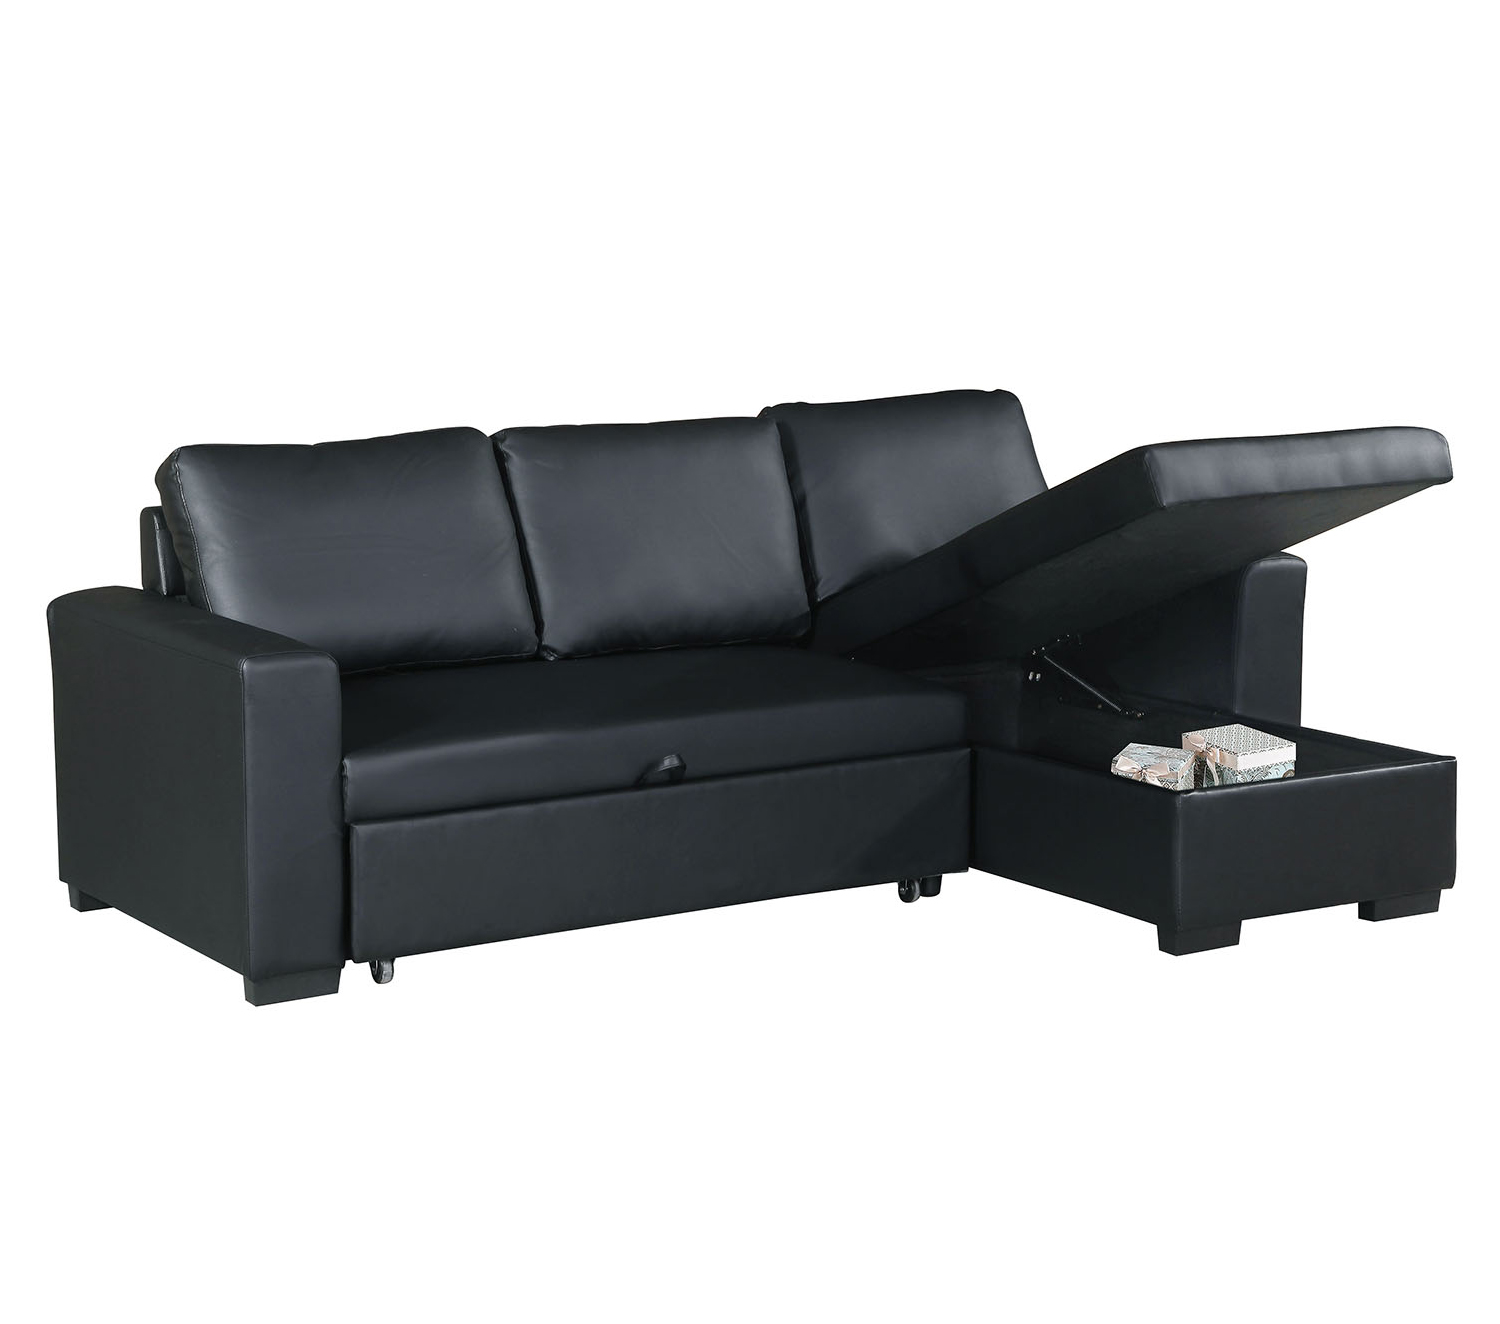 Bobkona Parker Faux Leather 2-Piece Sectional with Pull-Out Bed and Compartment in Black by Poundex